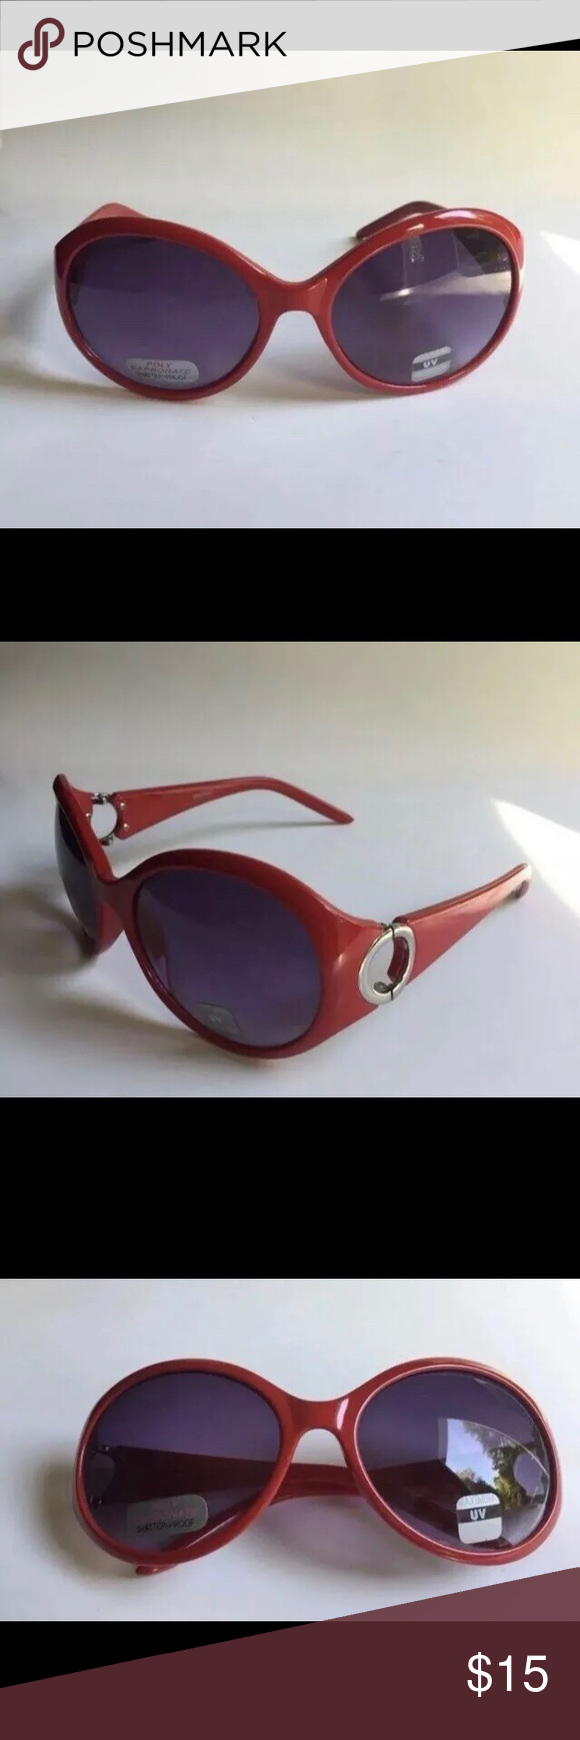 Womens Fashion Sunglasses Red and silver framed sunglasses Poly carbonate shatterproof lenses Maximum UV protection Accessories Sunglasses Best Picture For Women Jewelry...